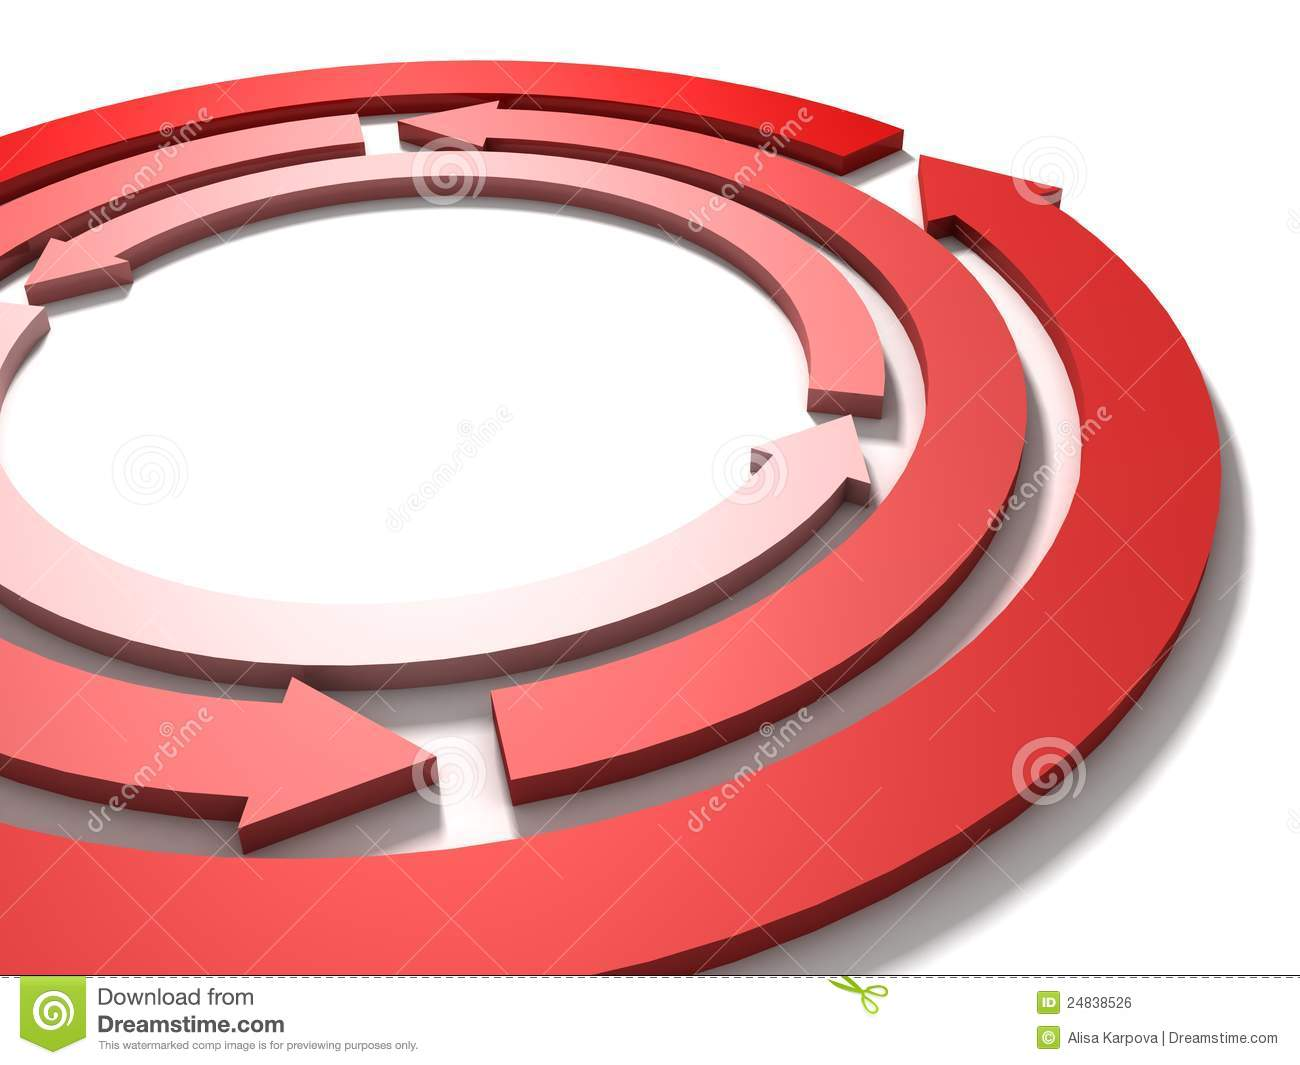 Process cycling arrow by arrow royalty free stock images image - Circle Cycle Red Arrows Team Work Concept On White Royalty Free Stock Image